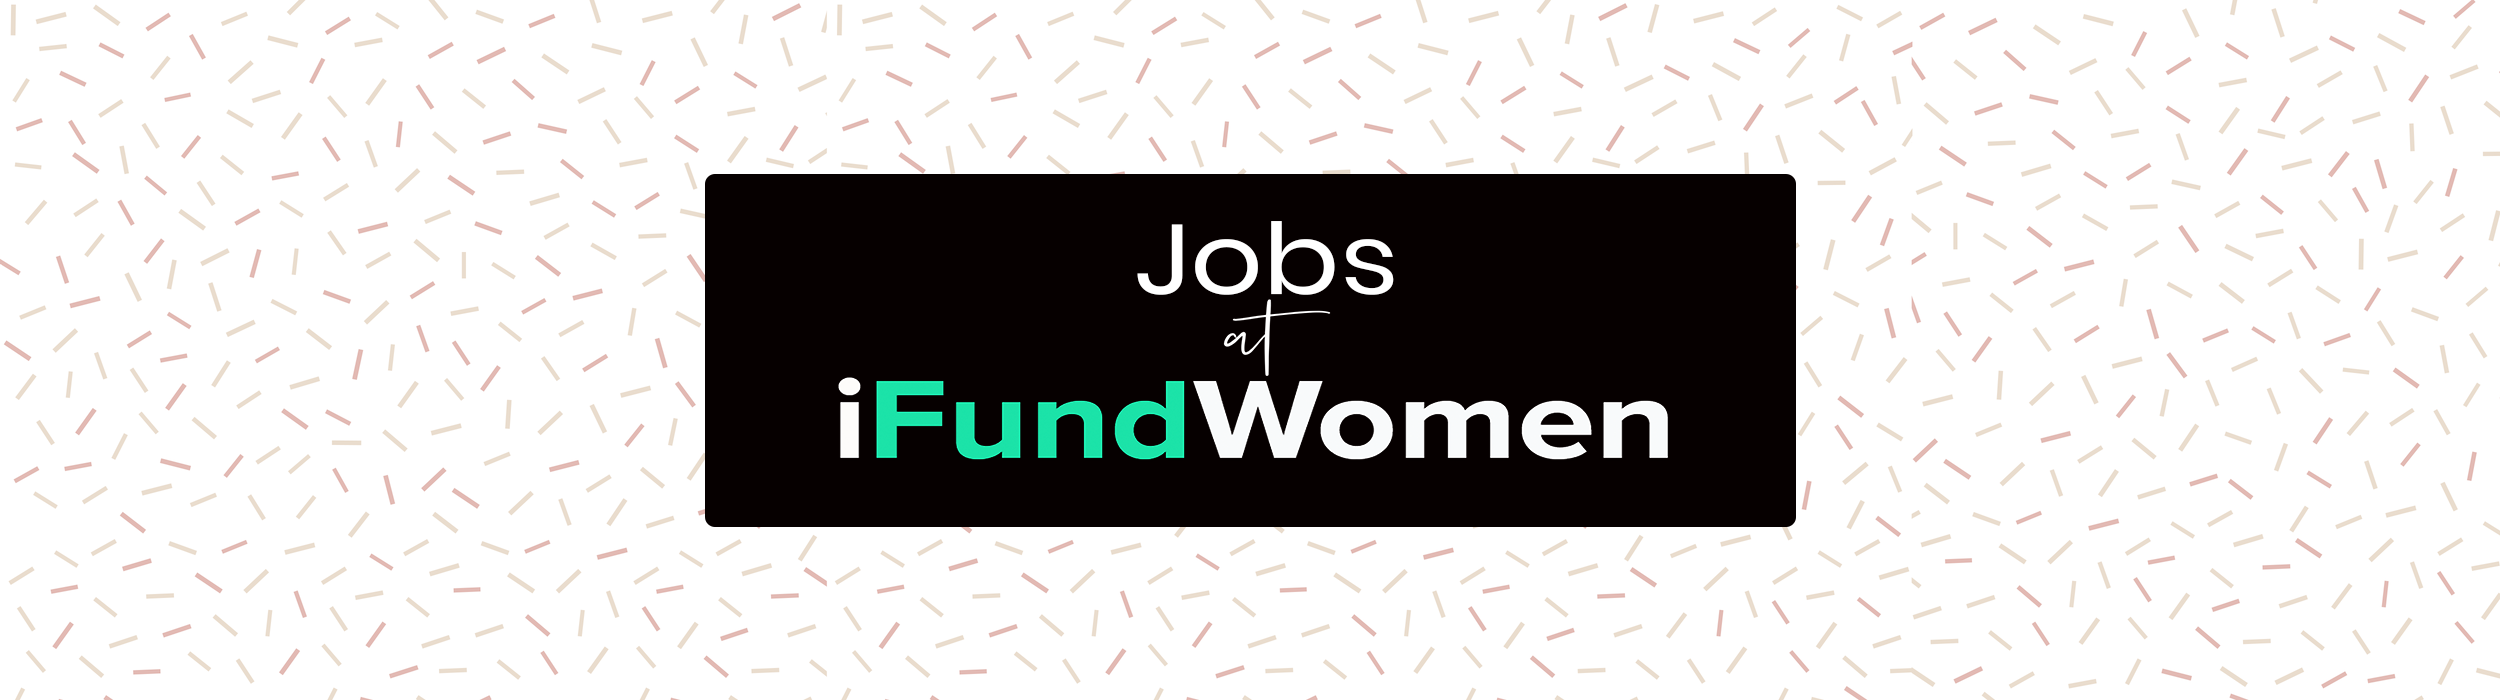 jobs at ifundwomen.png